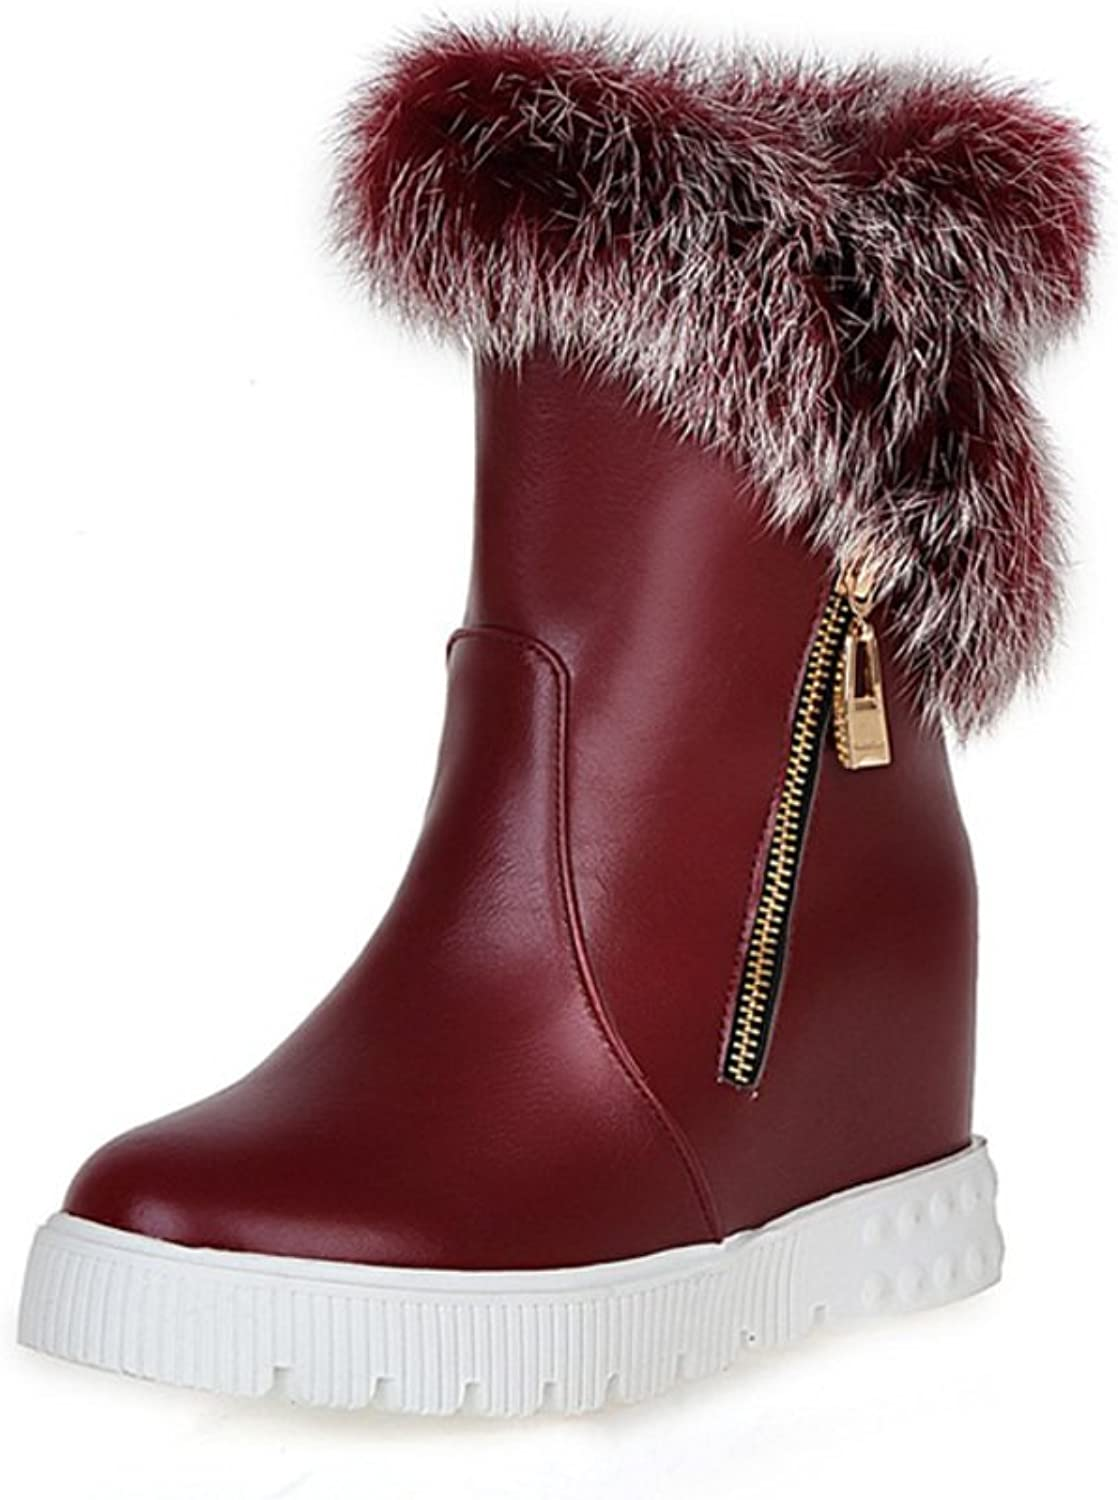 RHFDVGDS Autumn and winter snow boots students increased in boots short tube fur winter boots